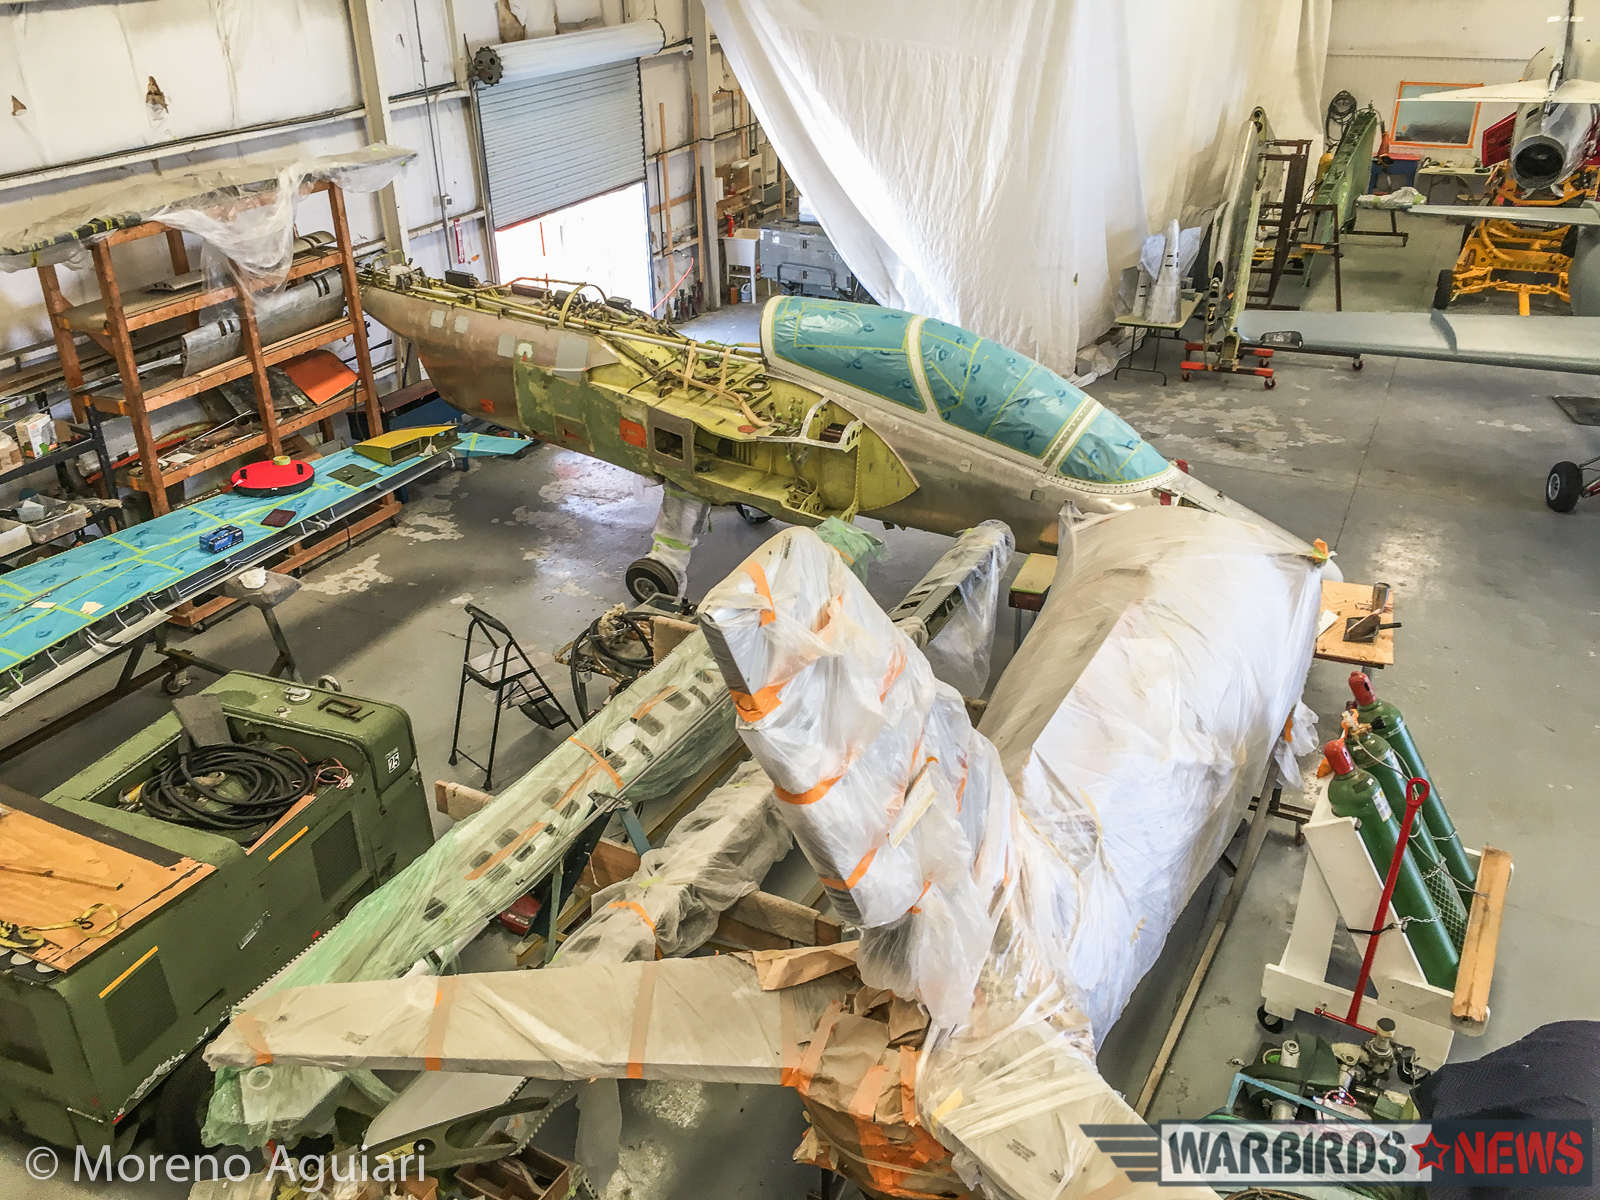 S.211 airframes awaiting rebuild at Classic Fighters of America. (photo by Moreno Aguiari)